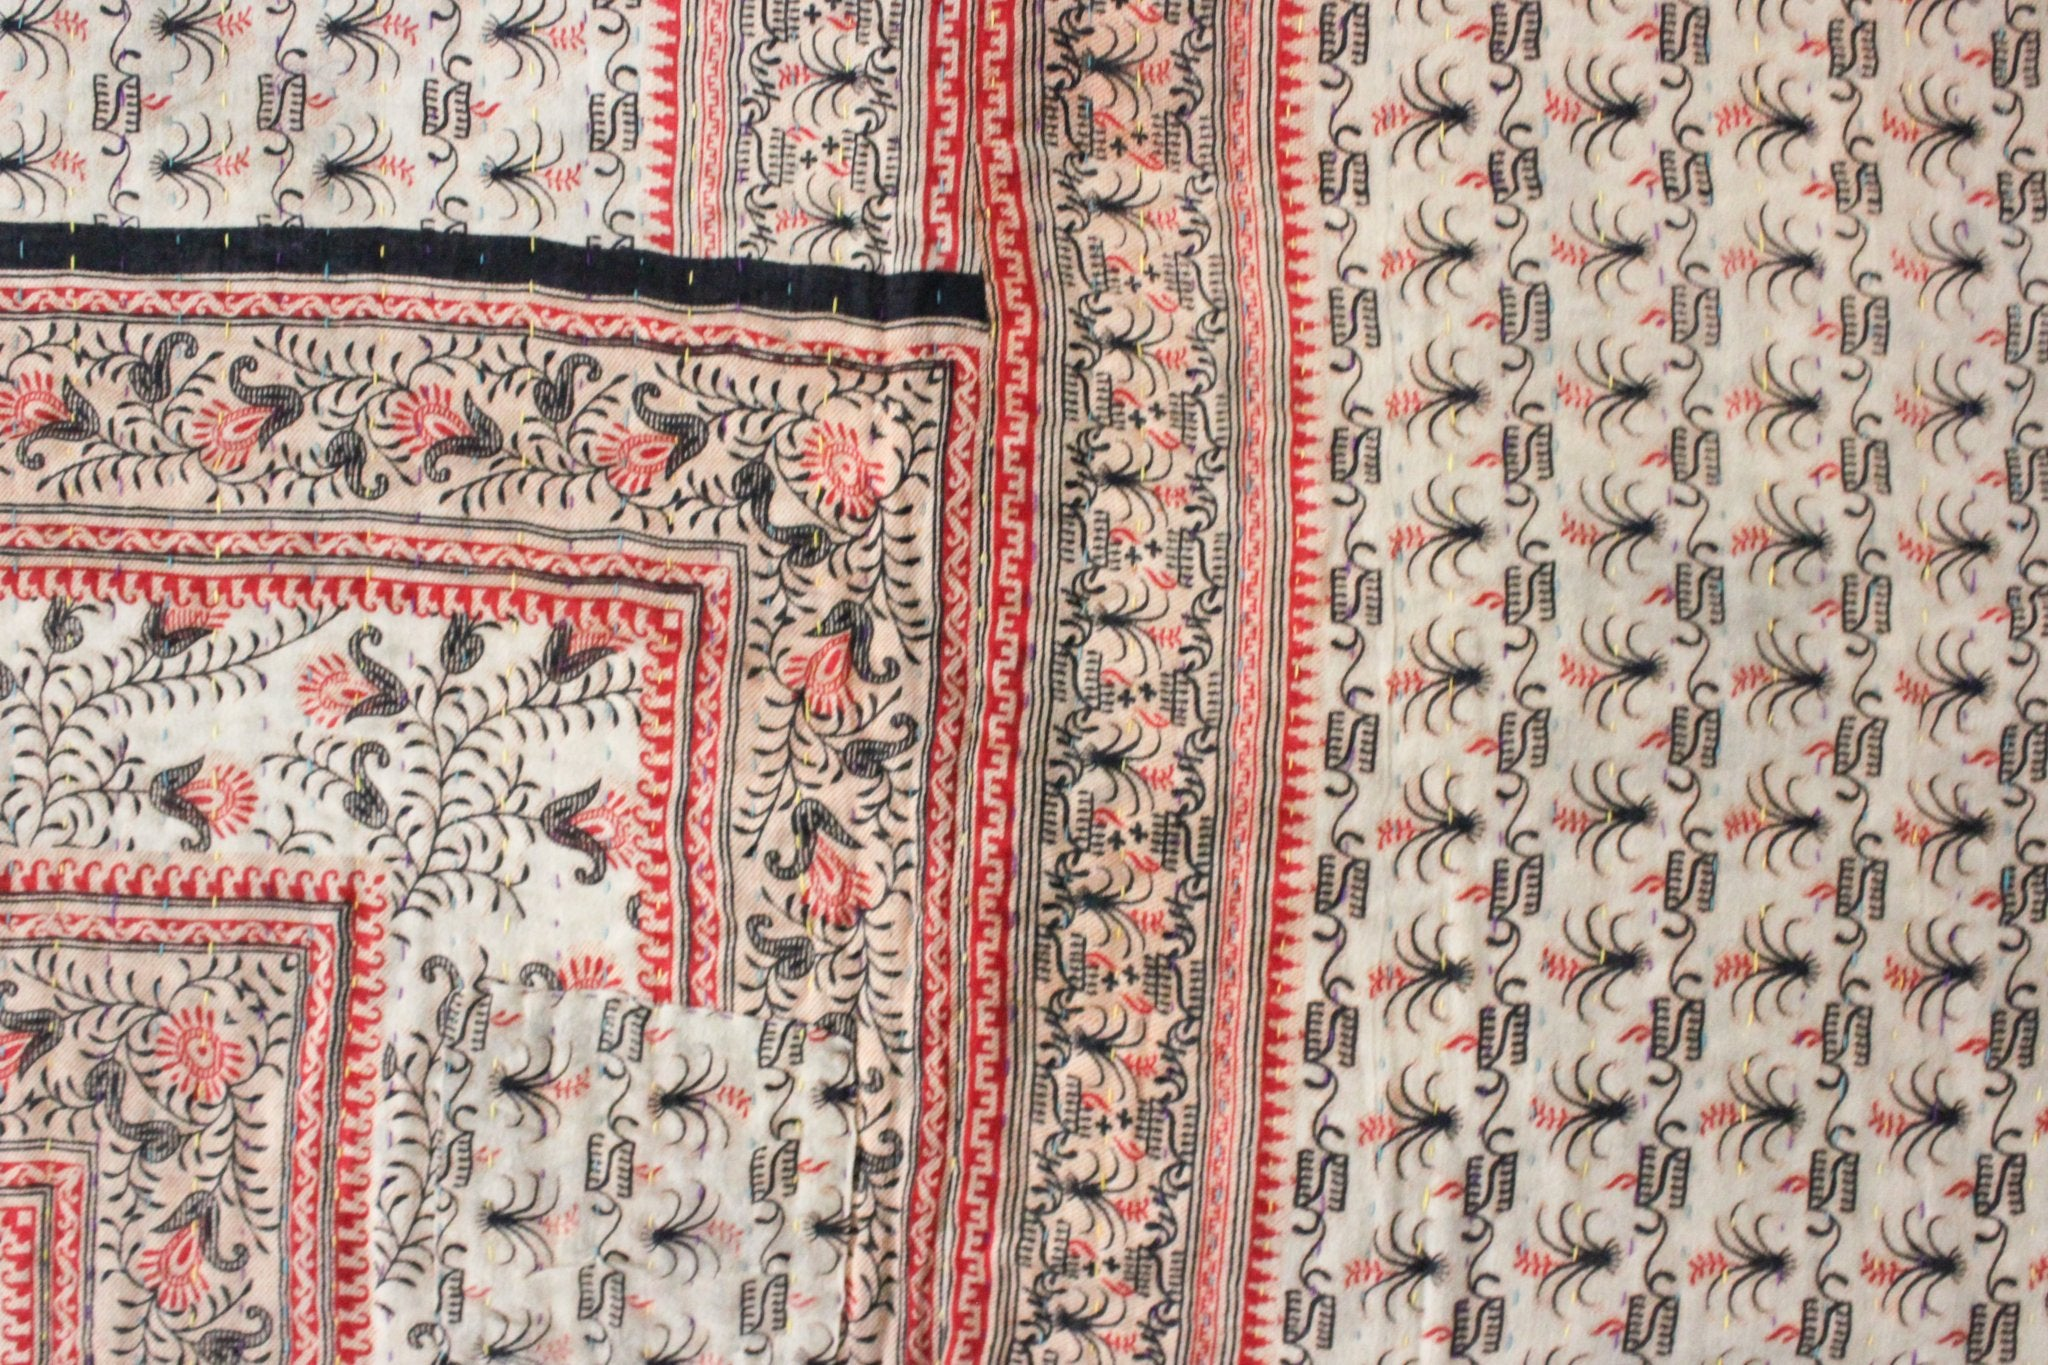 Vintage Kantha Quilt in pink detail- Anokha Collection